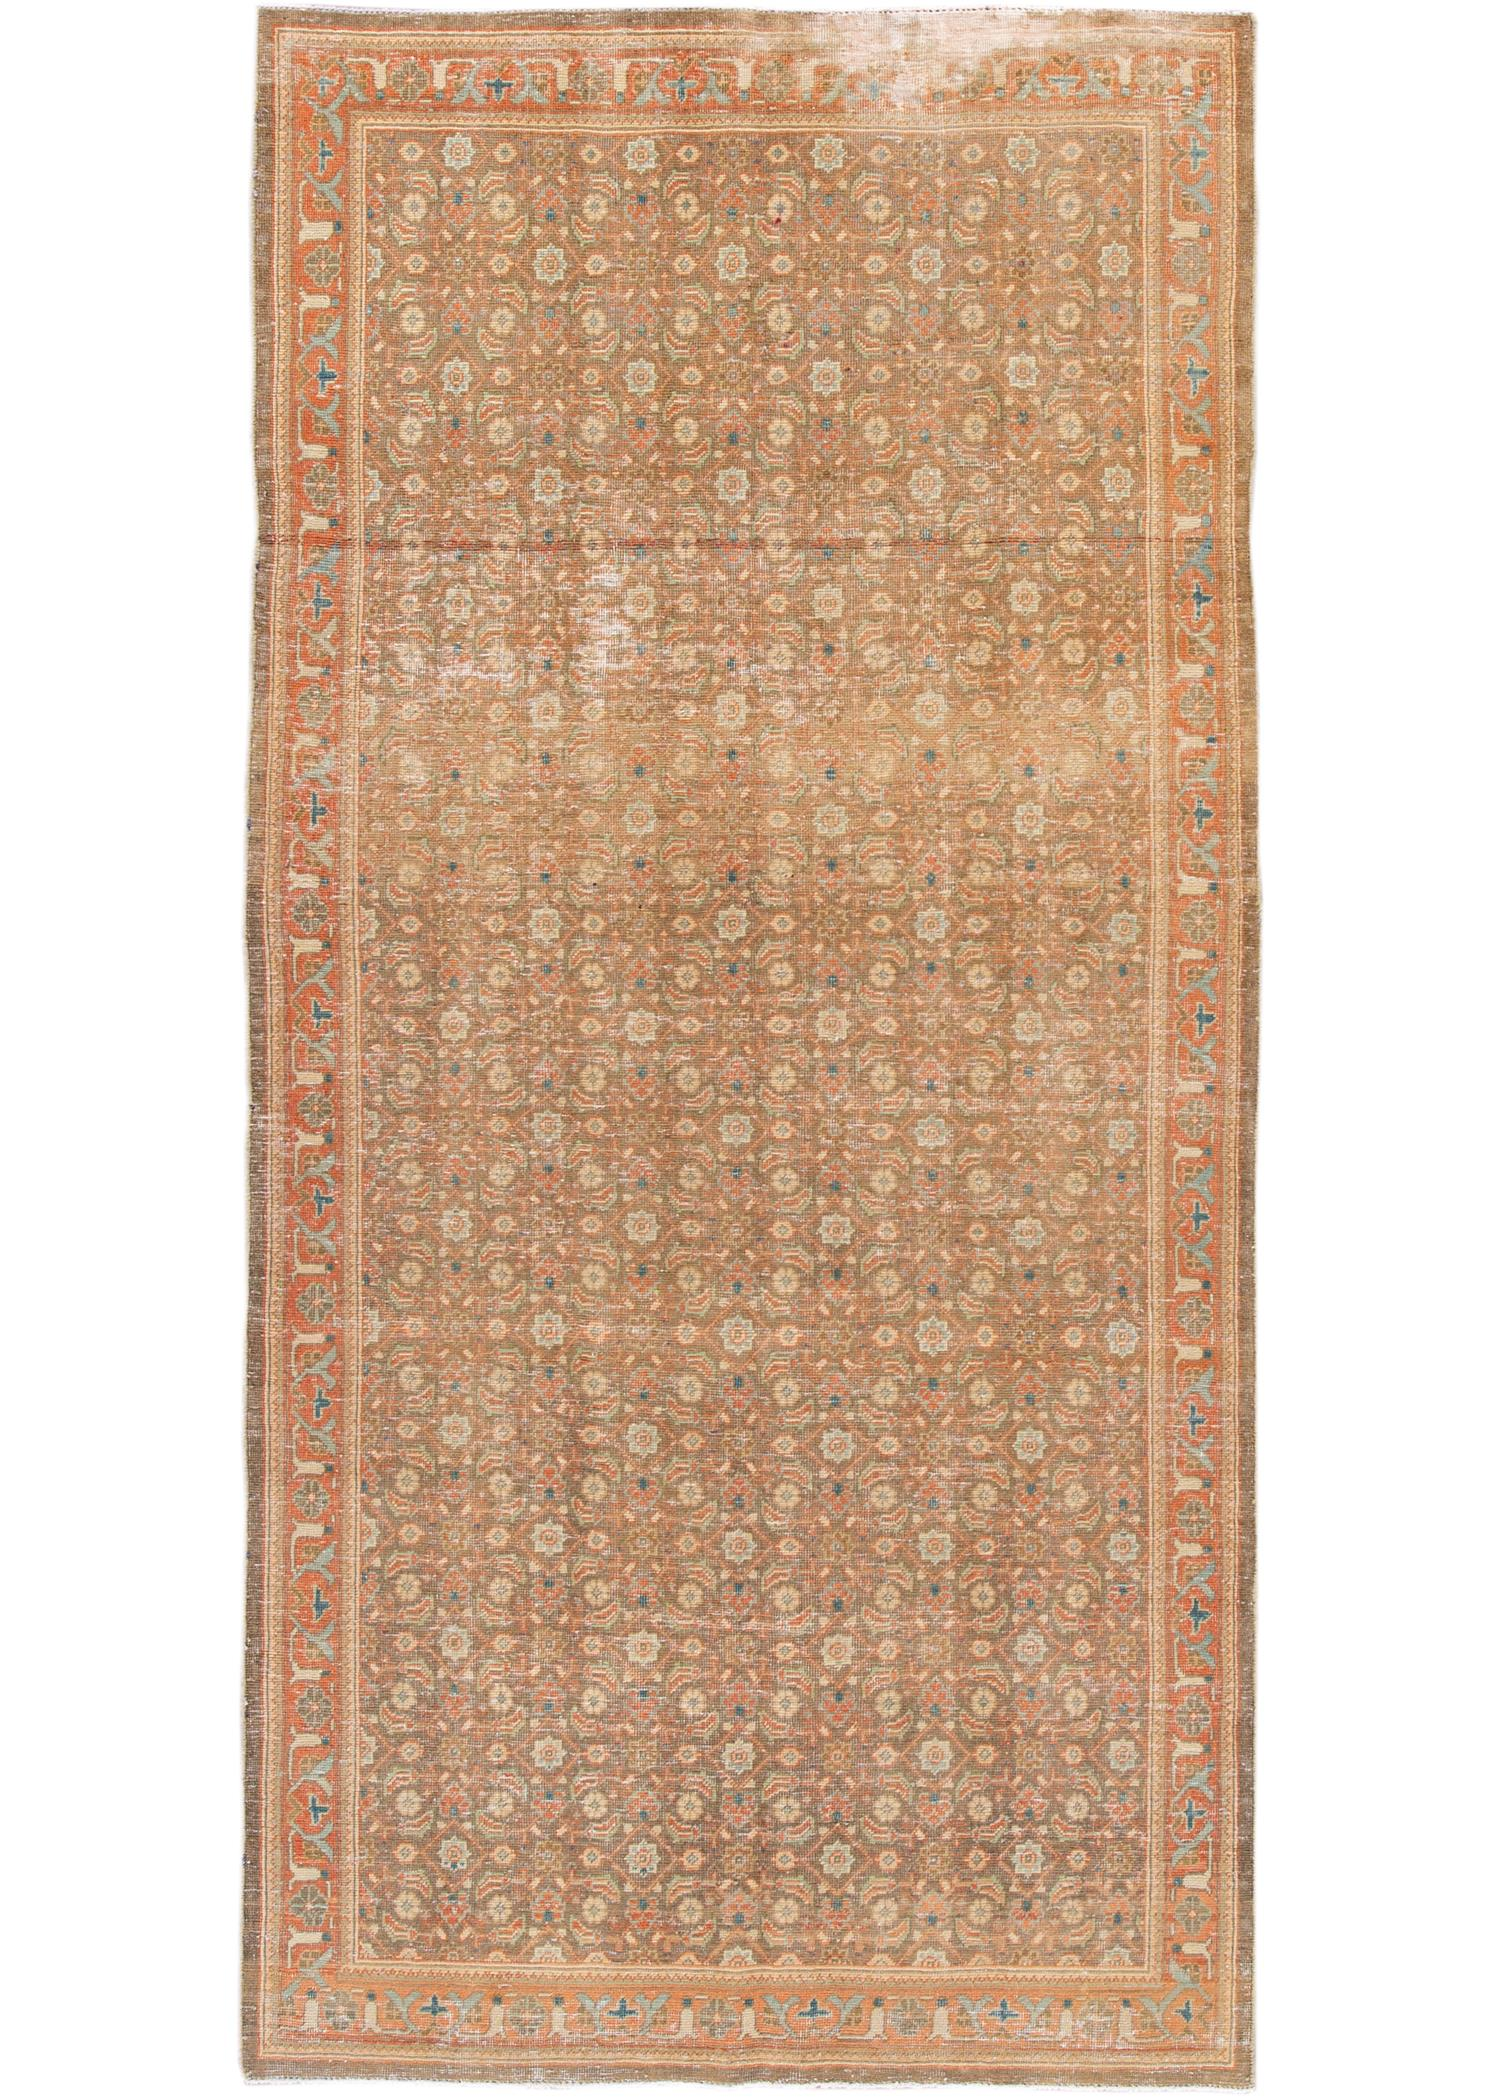 Antique Rug, 5X10